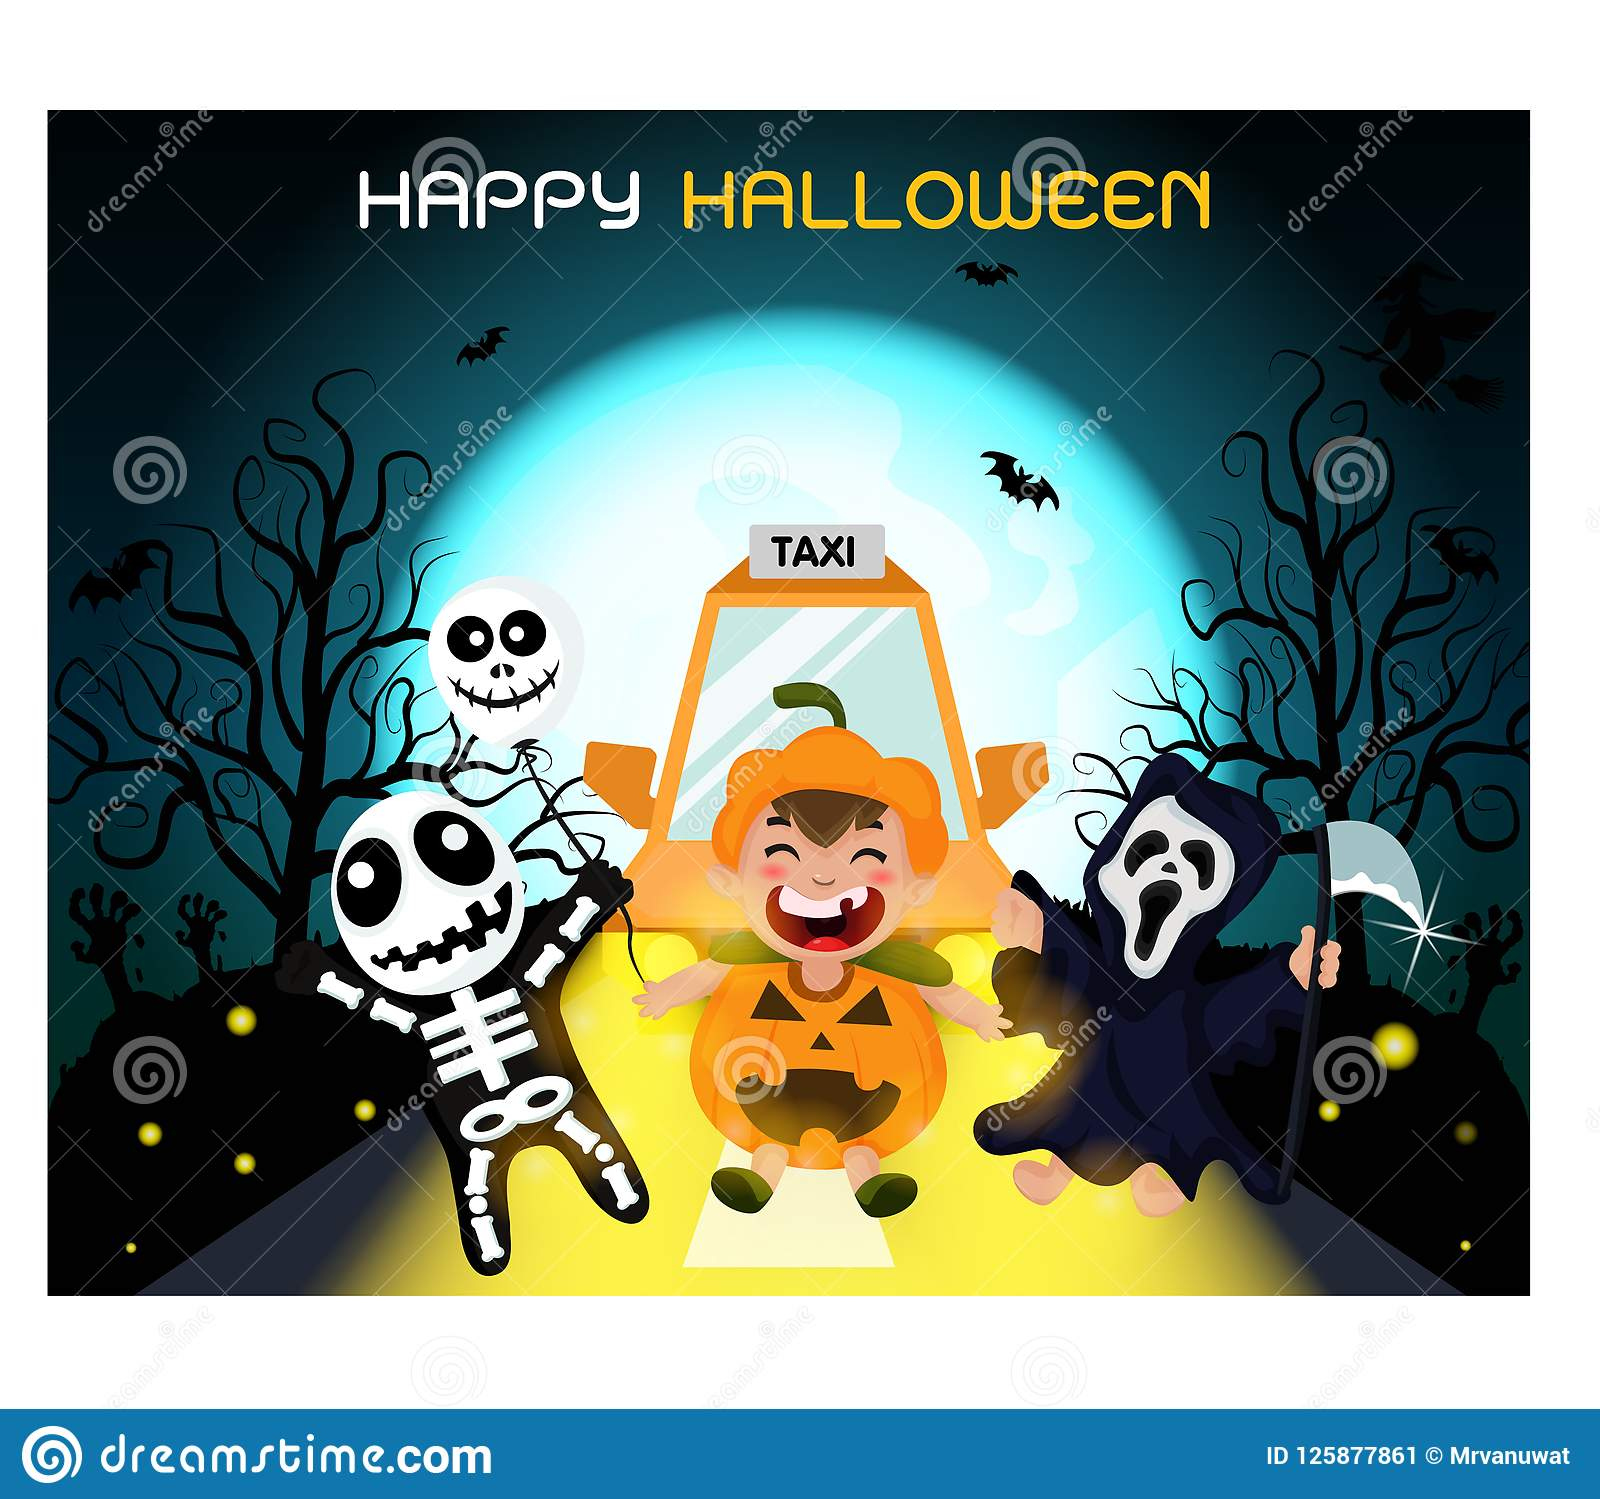 Ghosts gather at a party, perfect for decorating a website or a Halloween card.